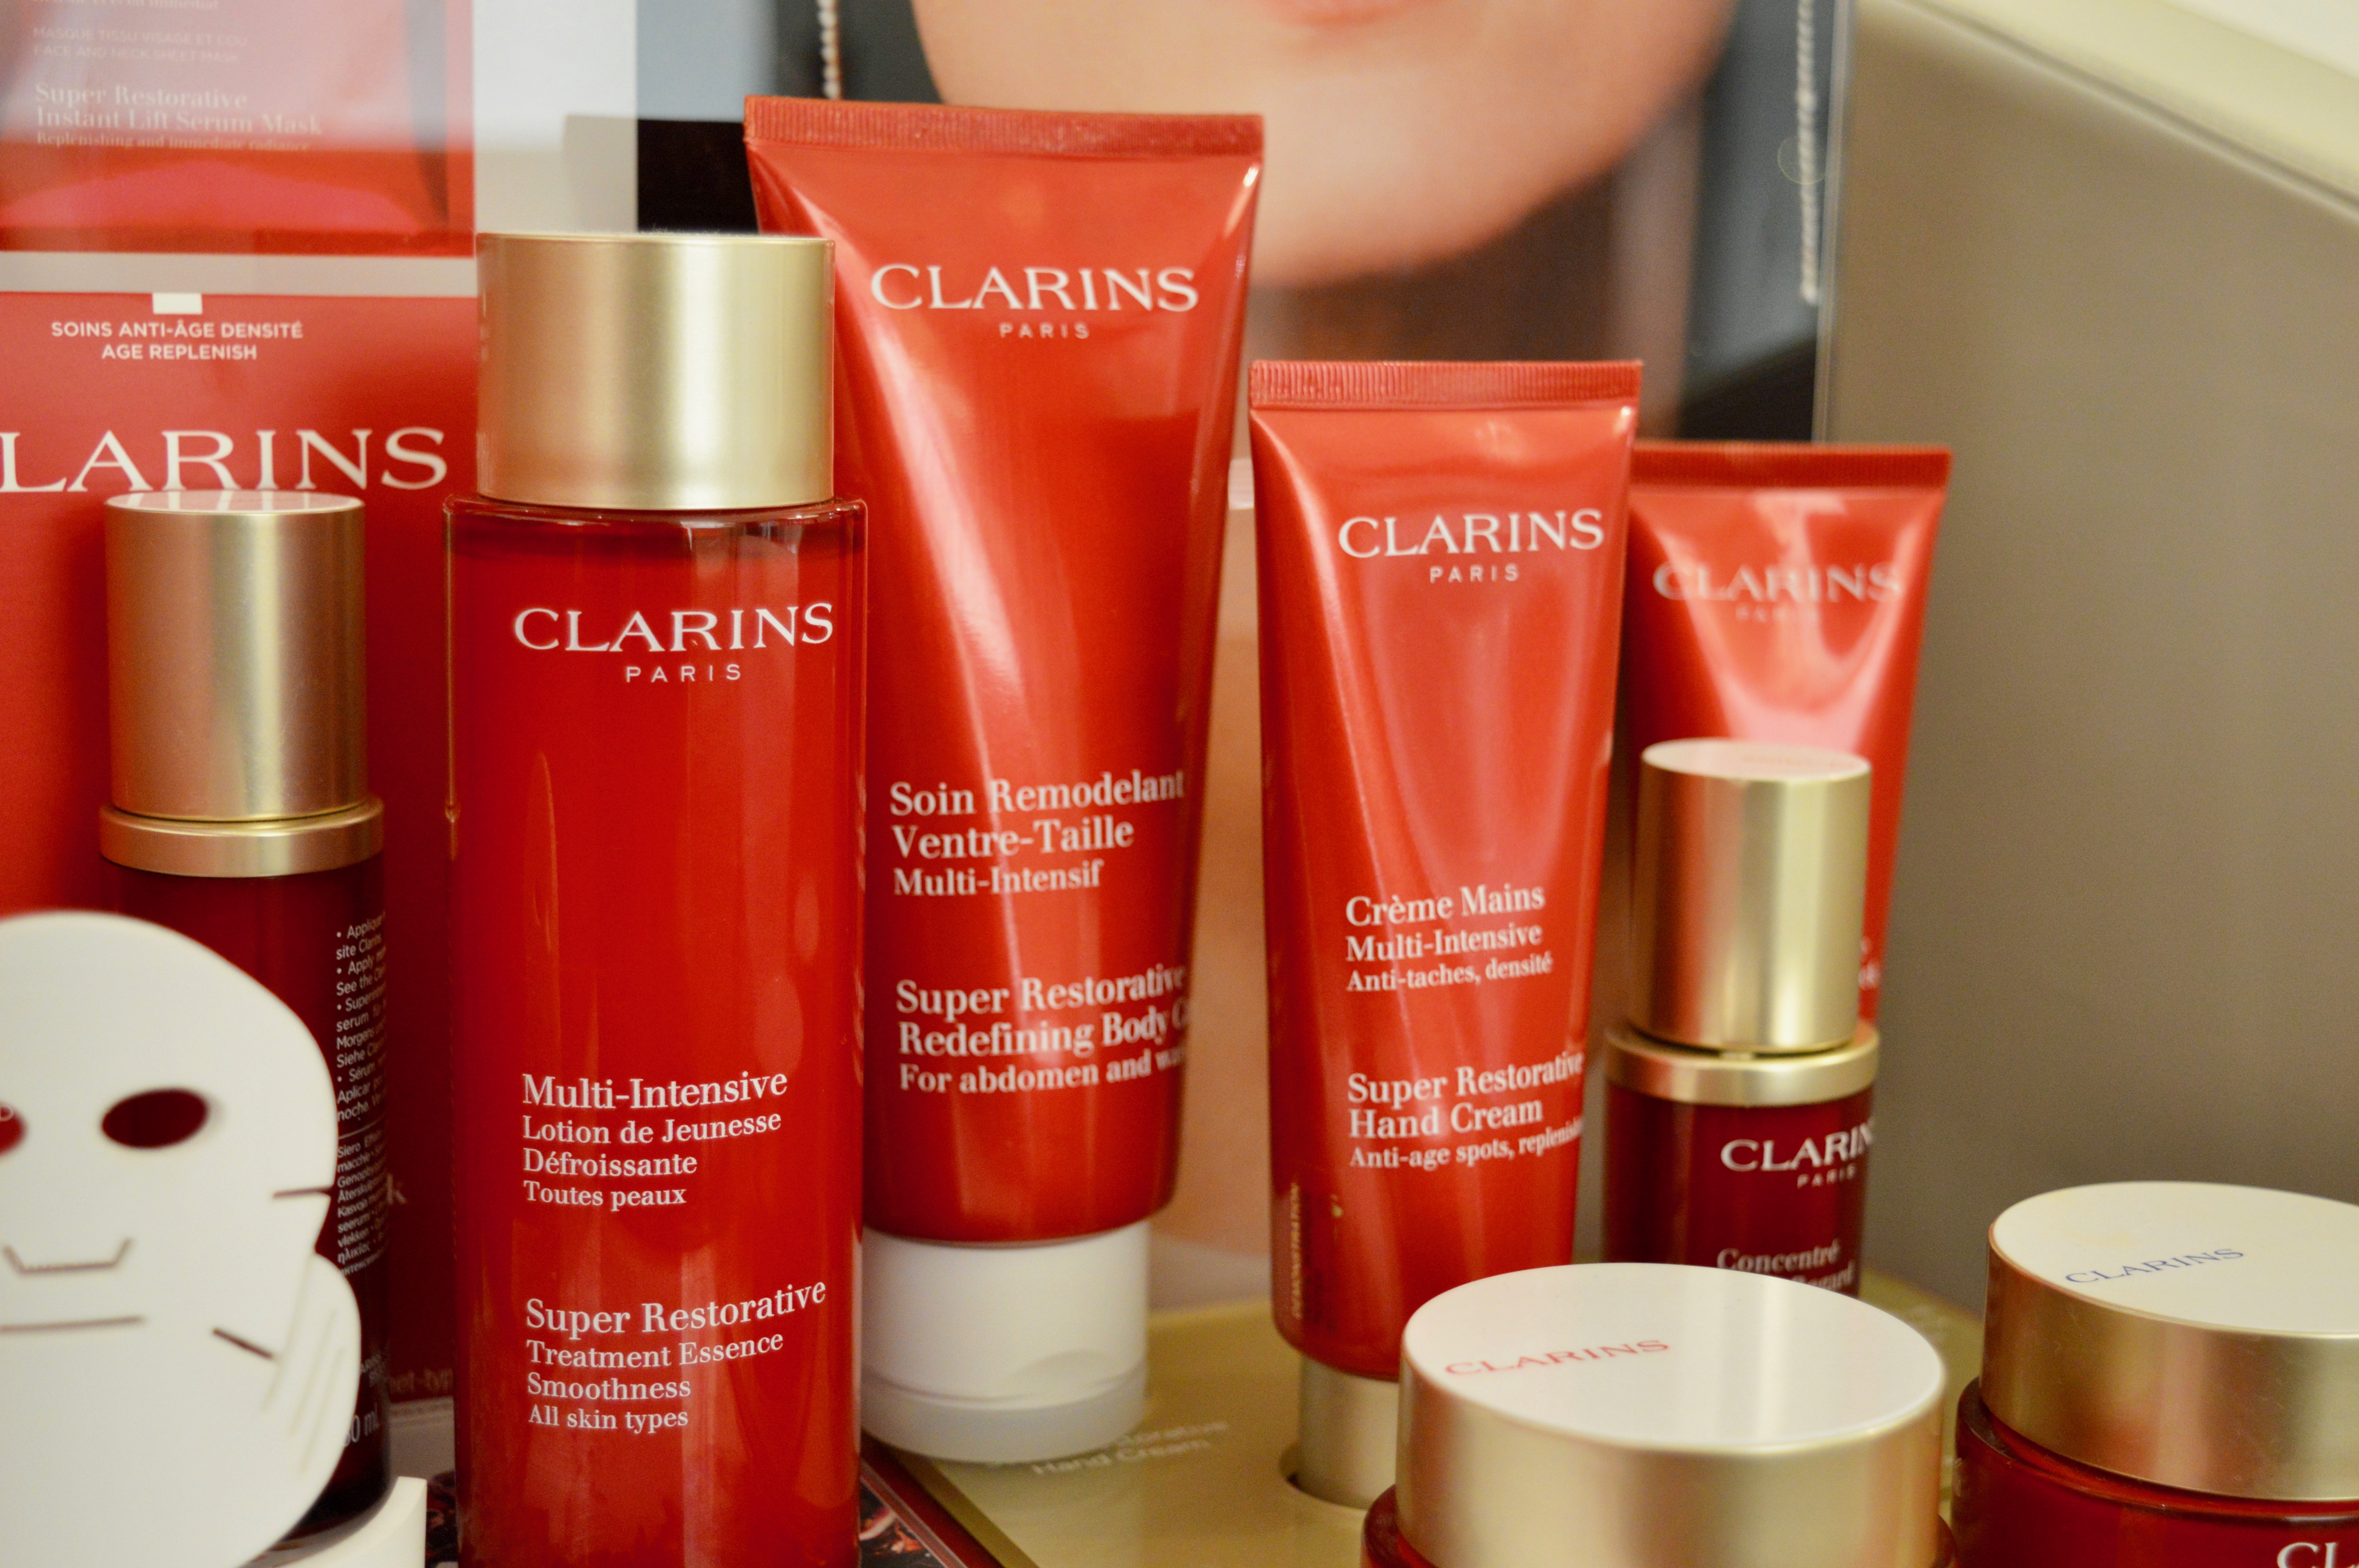 clarins-products-john-lewis-newcastle-beauty-retreat-north-east-blogging-event-elle-blonde-luxury-lifestyle-destination-blog